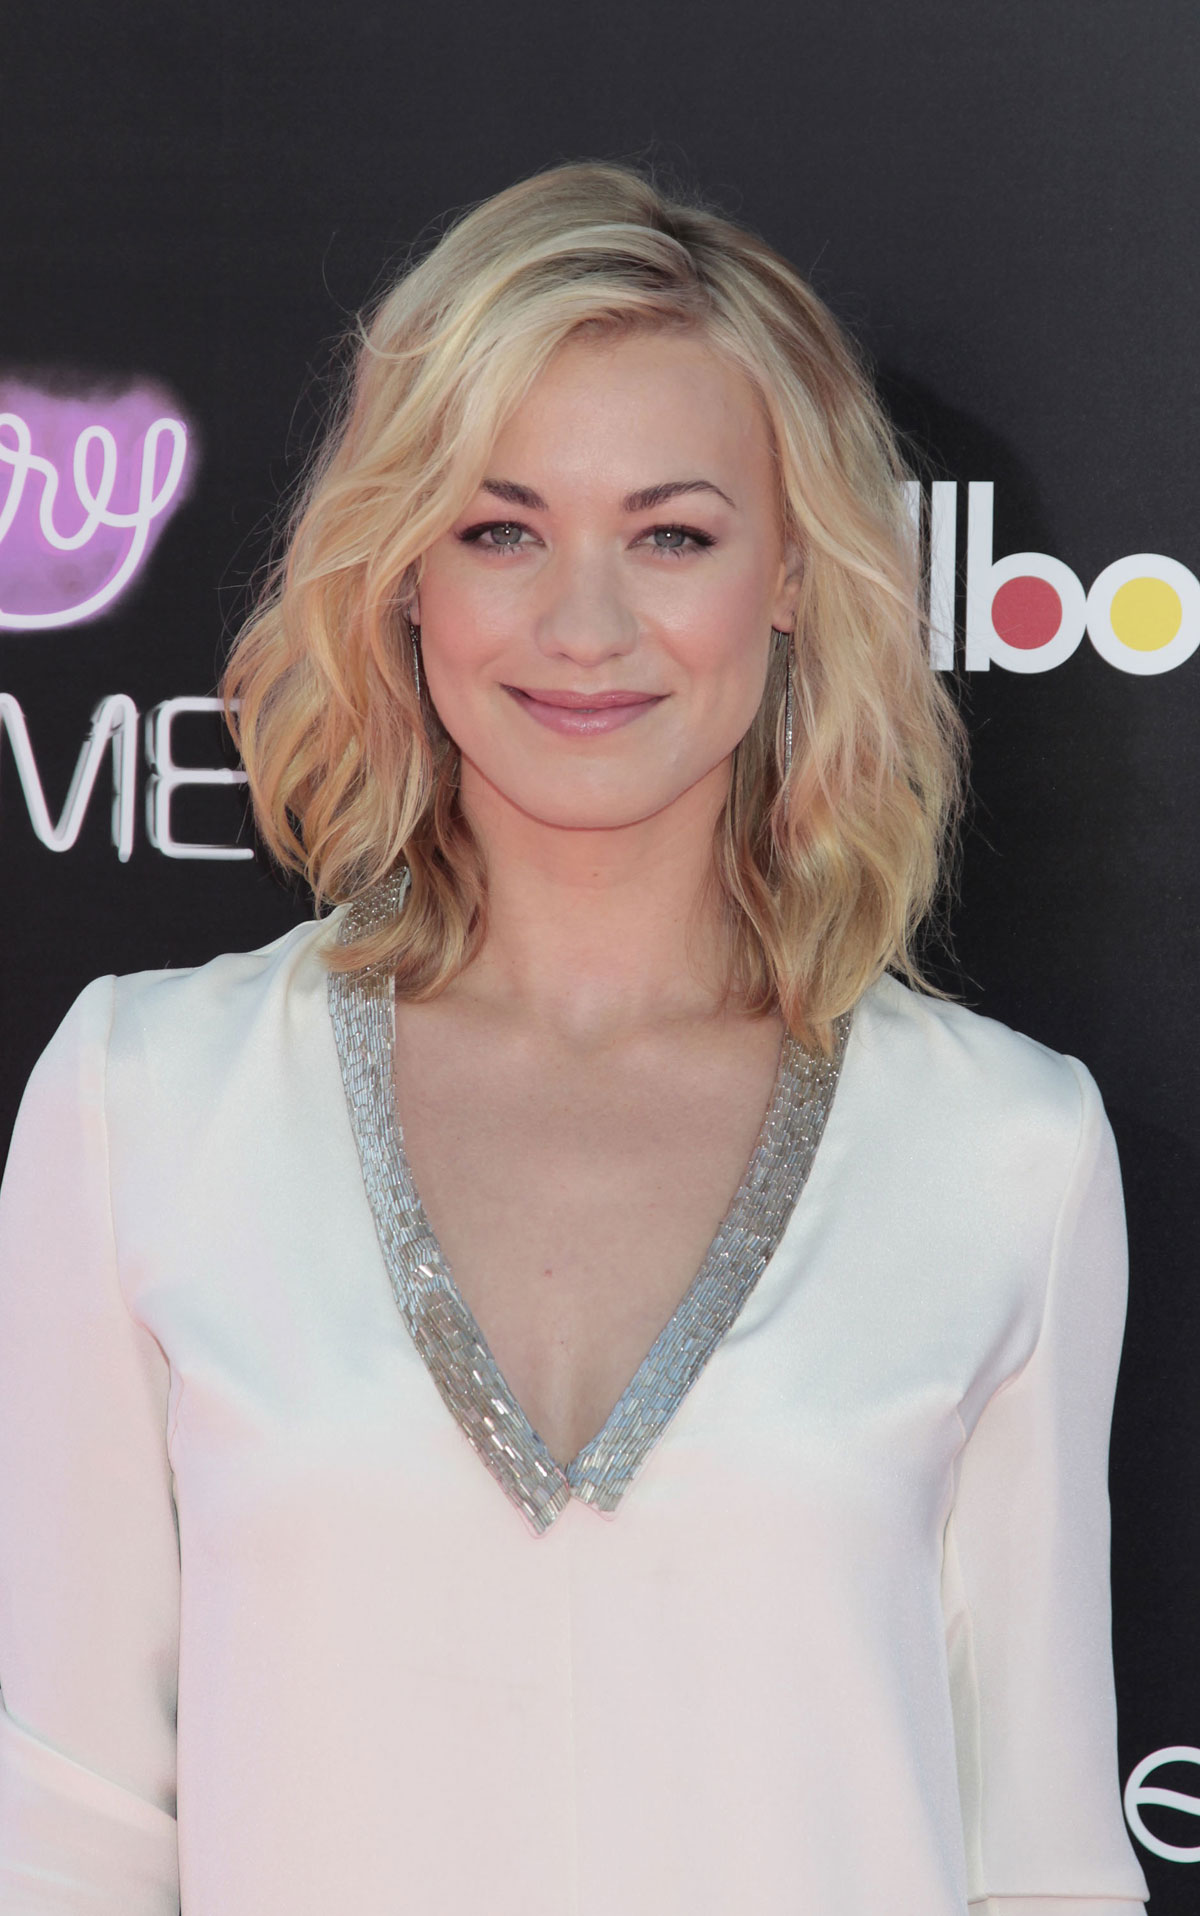 YVONNE STRAHOVSKI at Showtime TCA Party in Beverly Hills